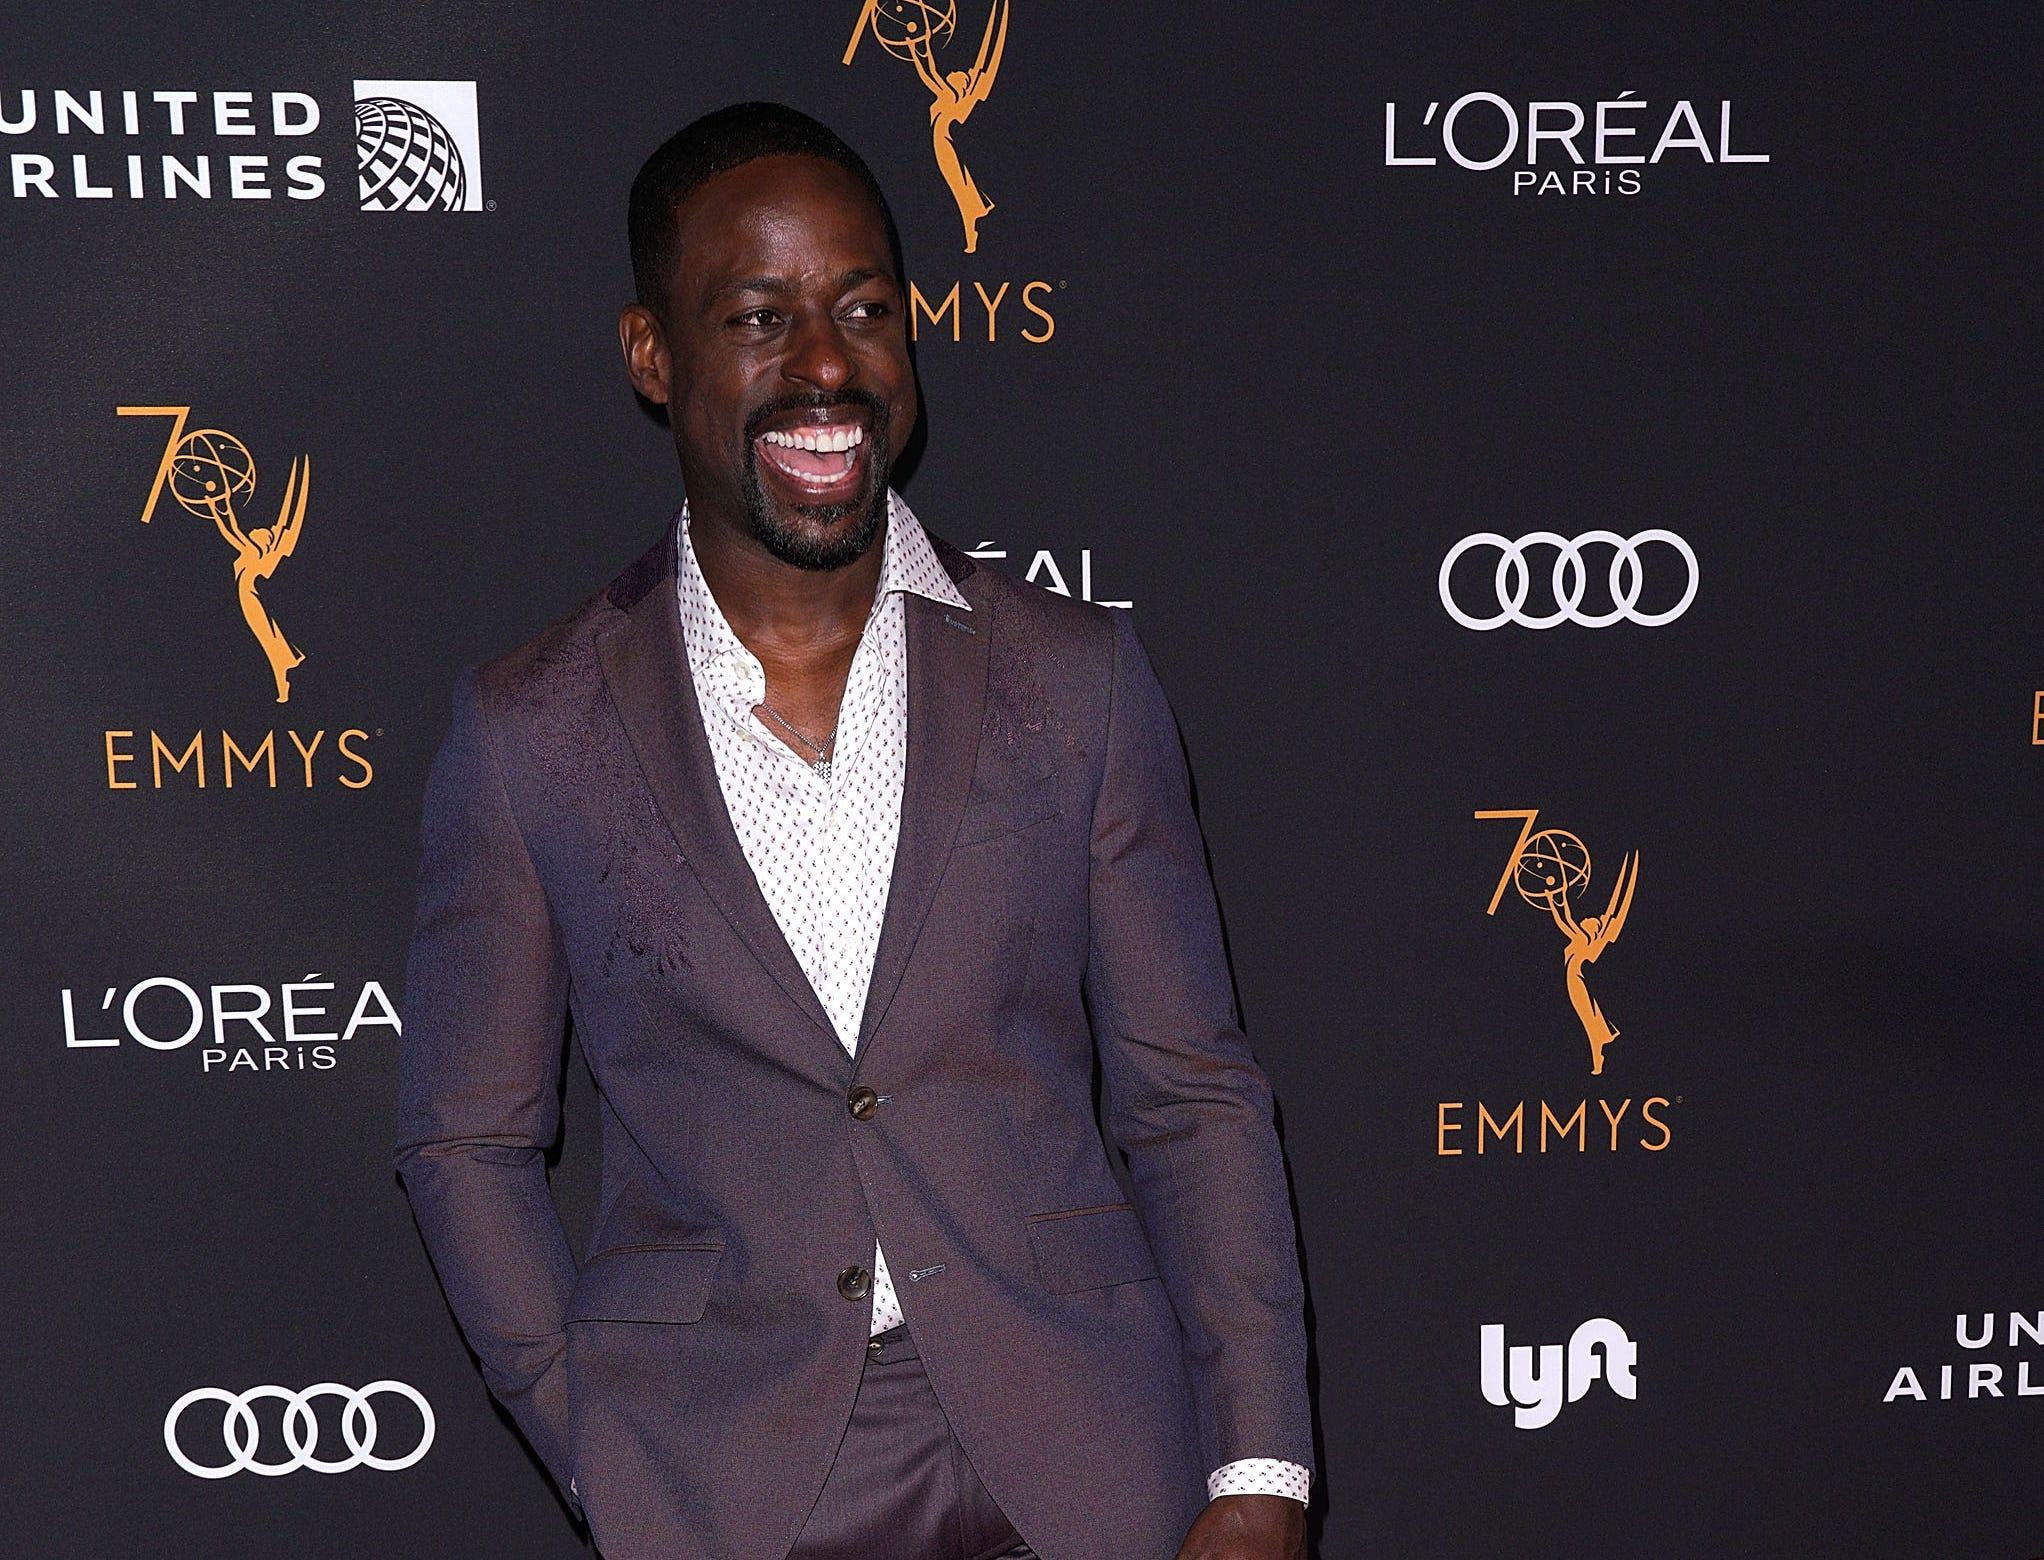 BEVERLY HILLS, CA - SEPTEMBER 15:  Actor Sterling K. Brown attends the Television Academy Honors Emmy Nominated Performers at Wallis Annenberg Center for the Performing Arts on September 15, 2018 in Beverly Hills, California.  (Photo by JC Olivera/WireImage) ORG XMIT: 775226214 ORIG FILE ID: 1034008534